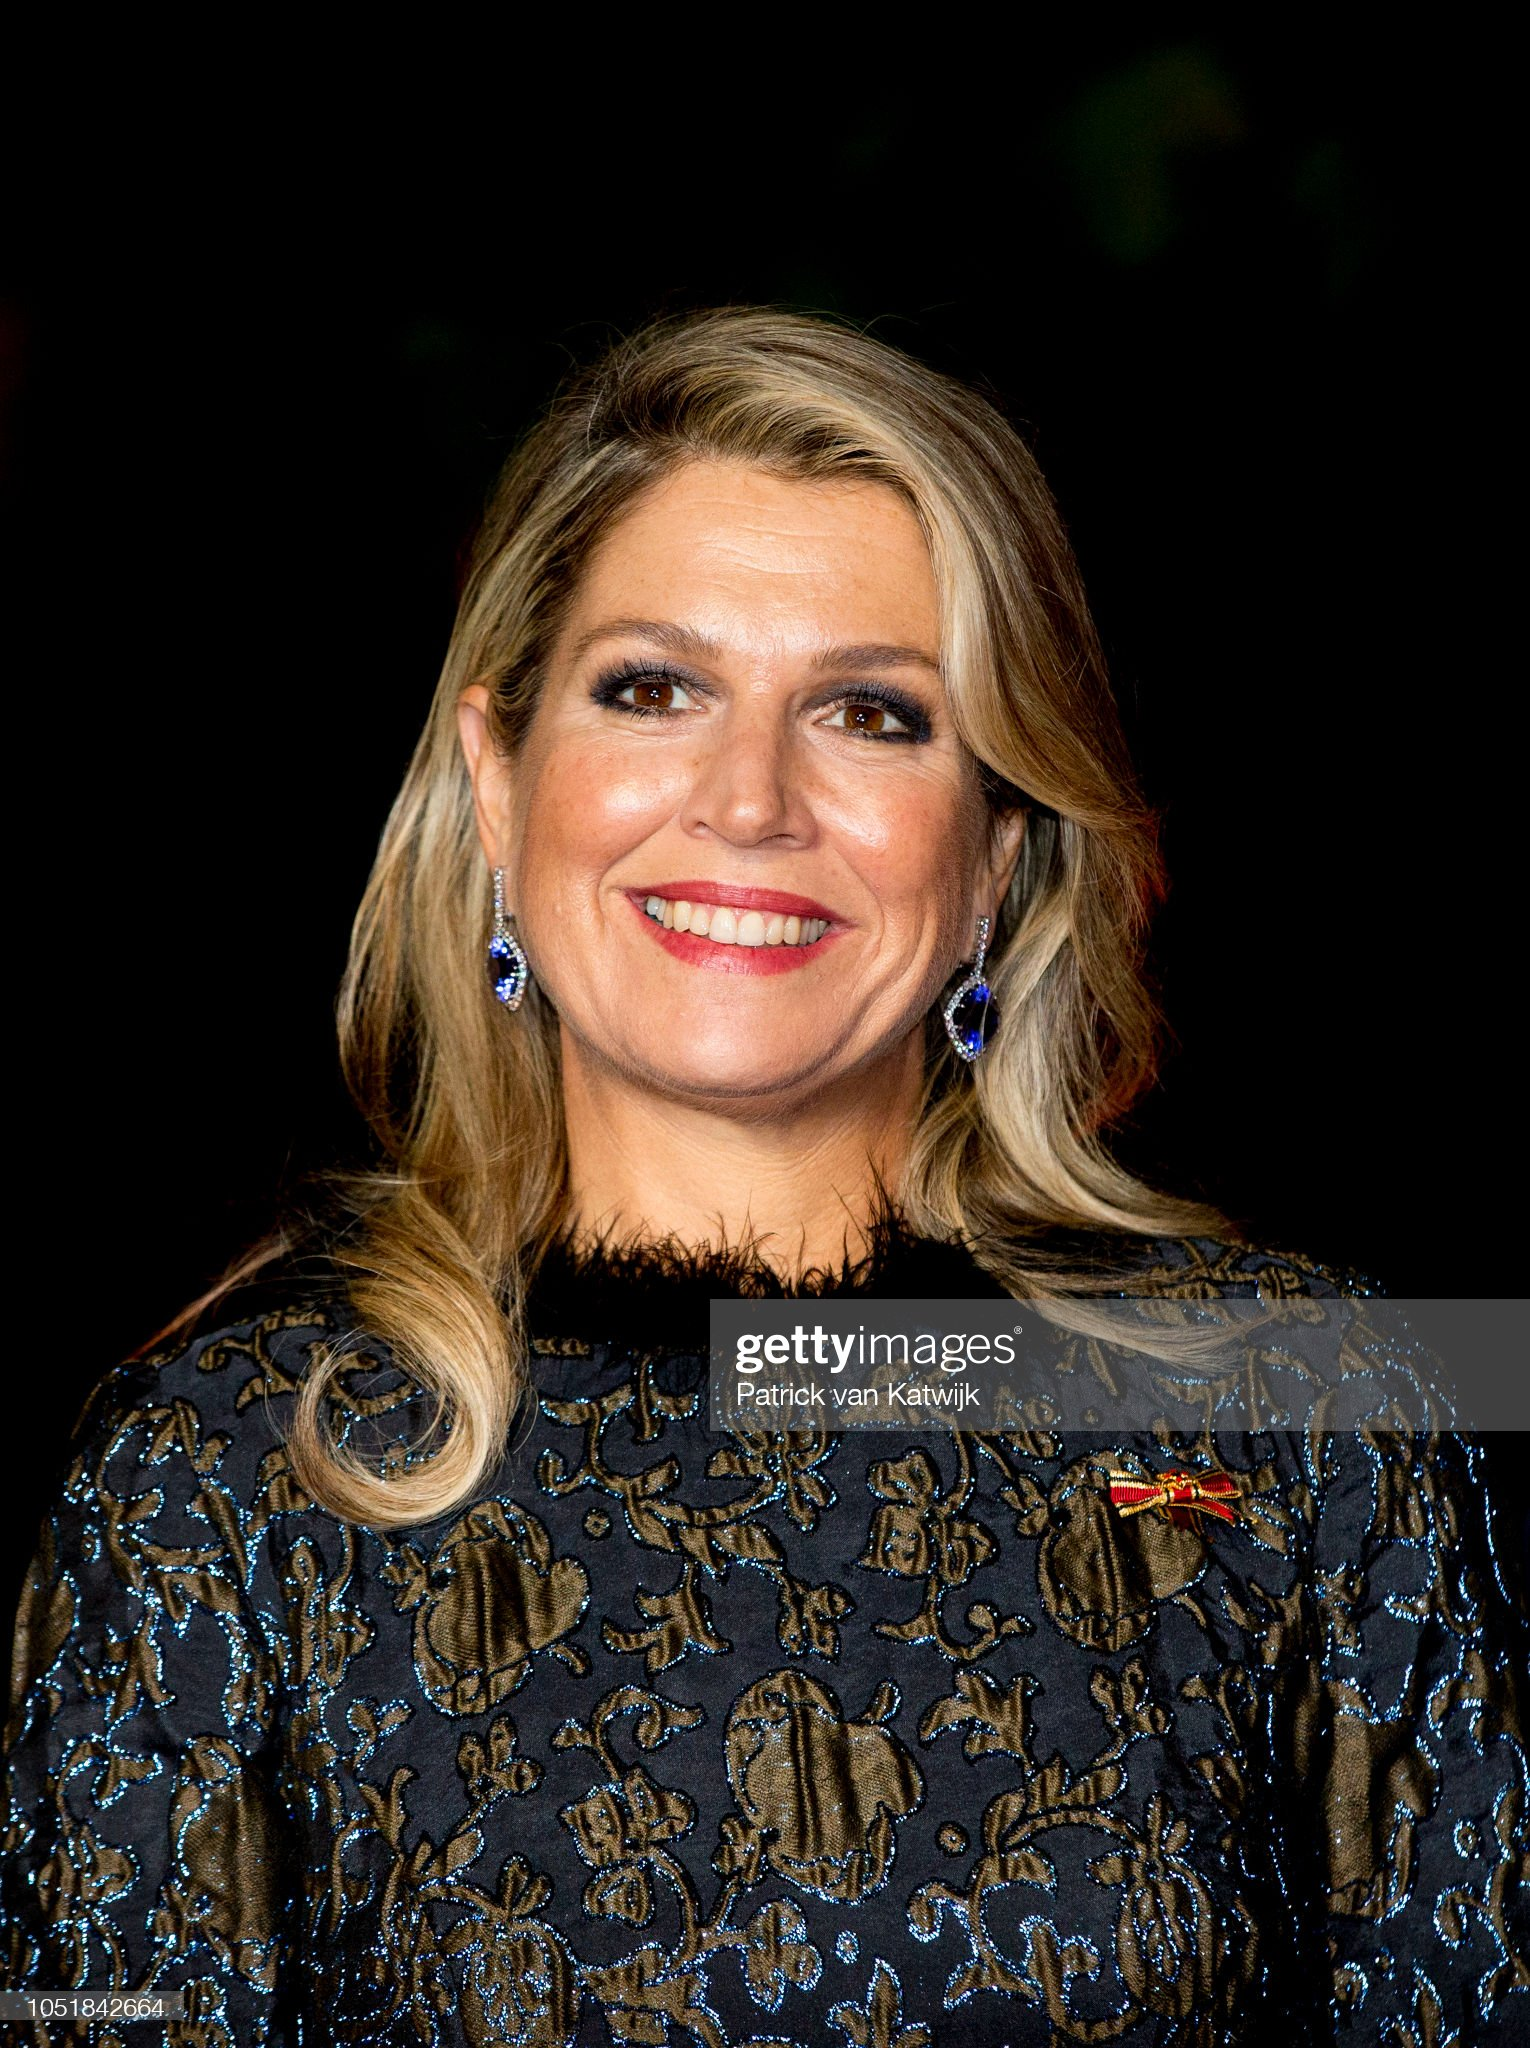 King Willem-Alexander and Queen Maxima of The Netherlands Visit Germany : News Photo